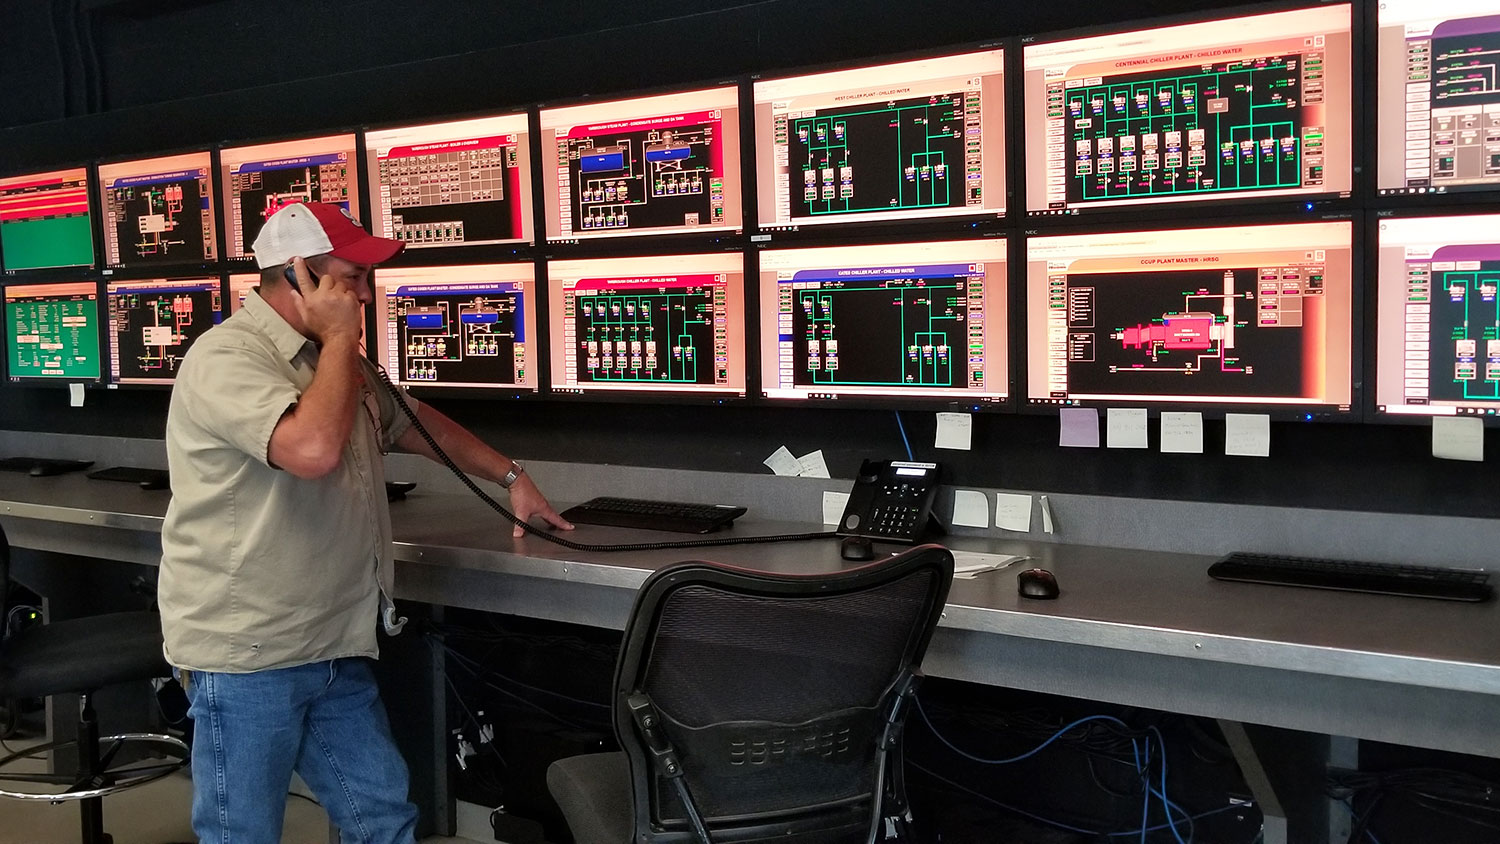 A central utility plant operator on the phone in a control room